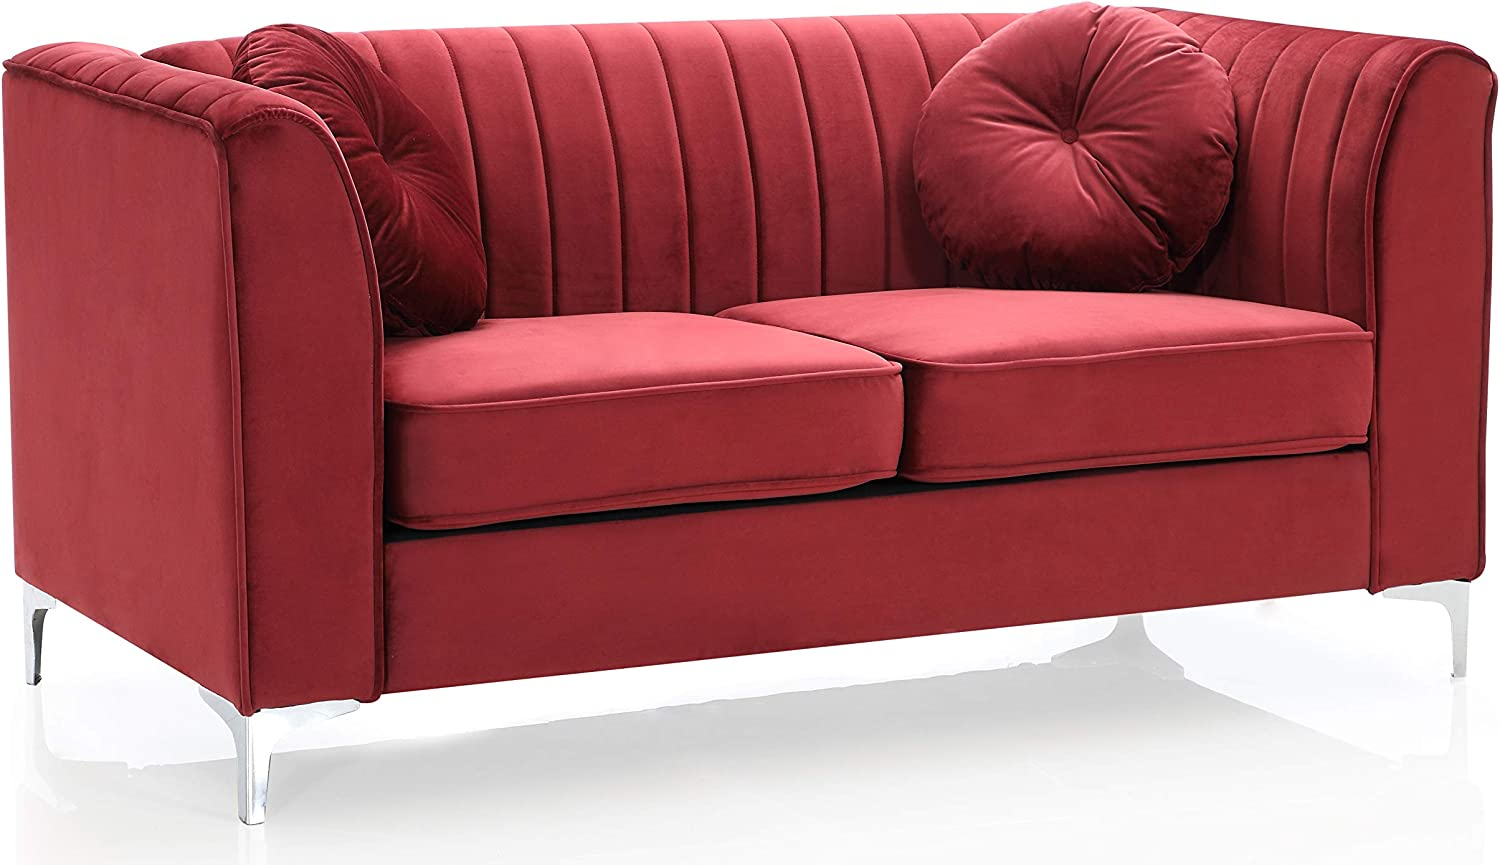 Glory Furniture Delray , Burgundy Loveseat (2 Boxes), 2 Seater